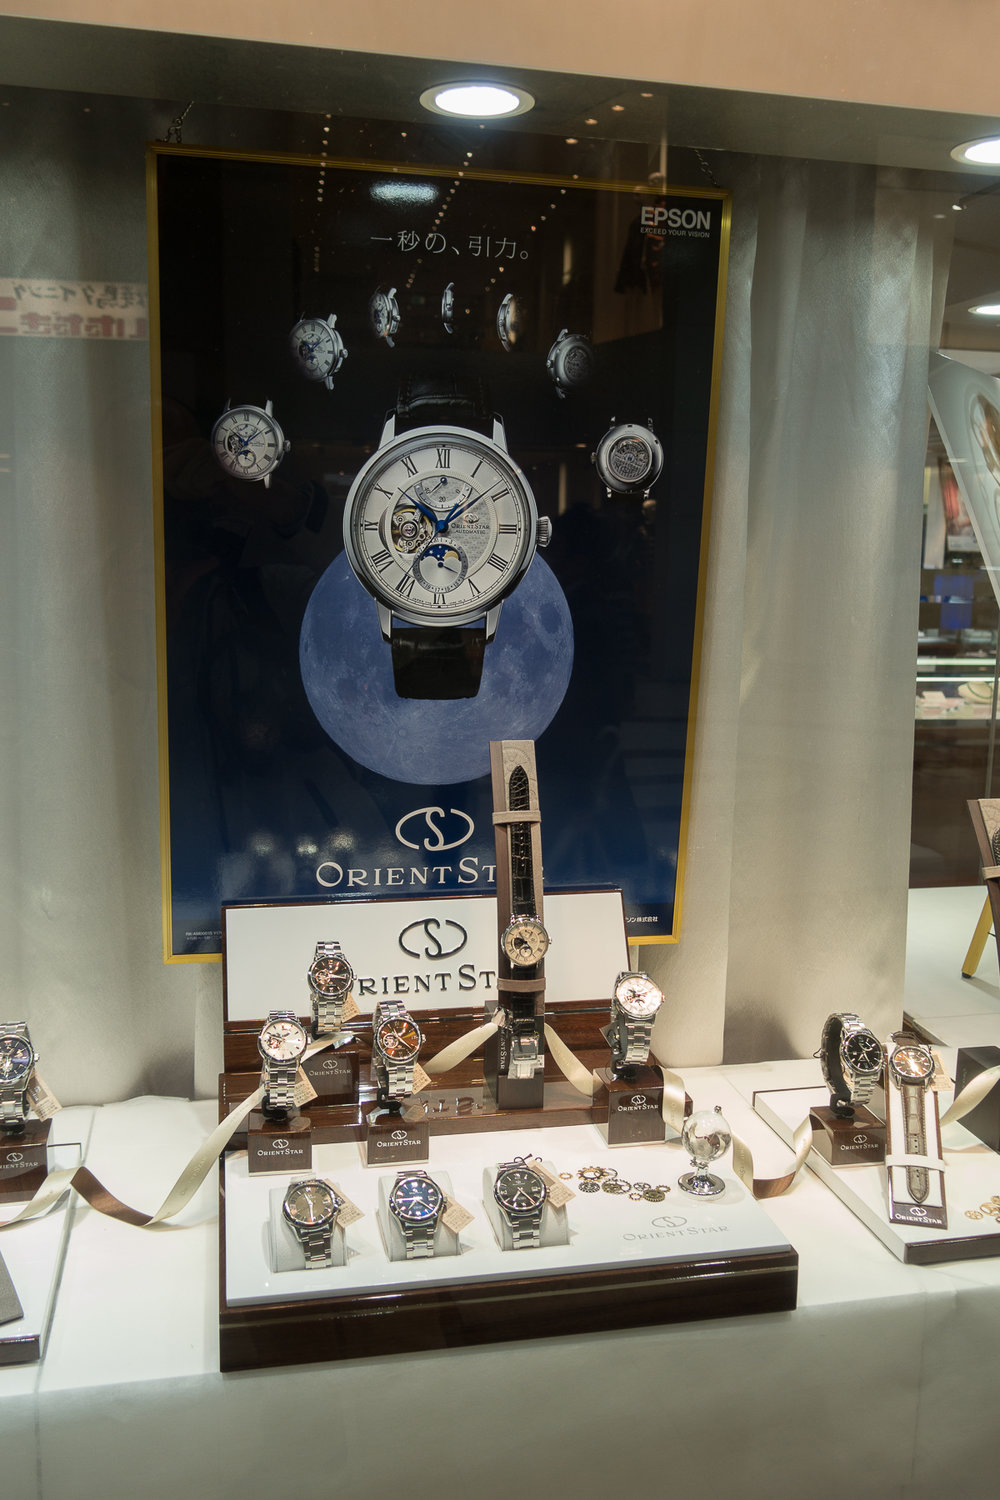 Orient Star window display